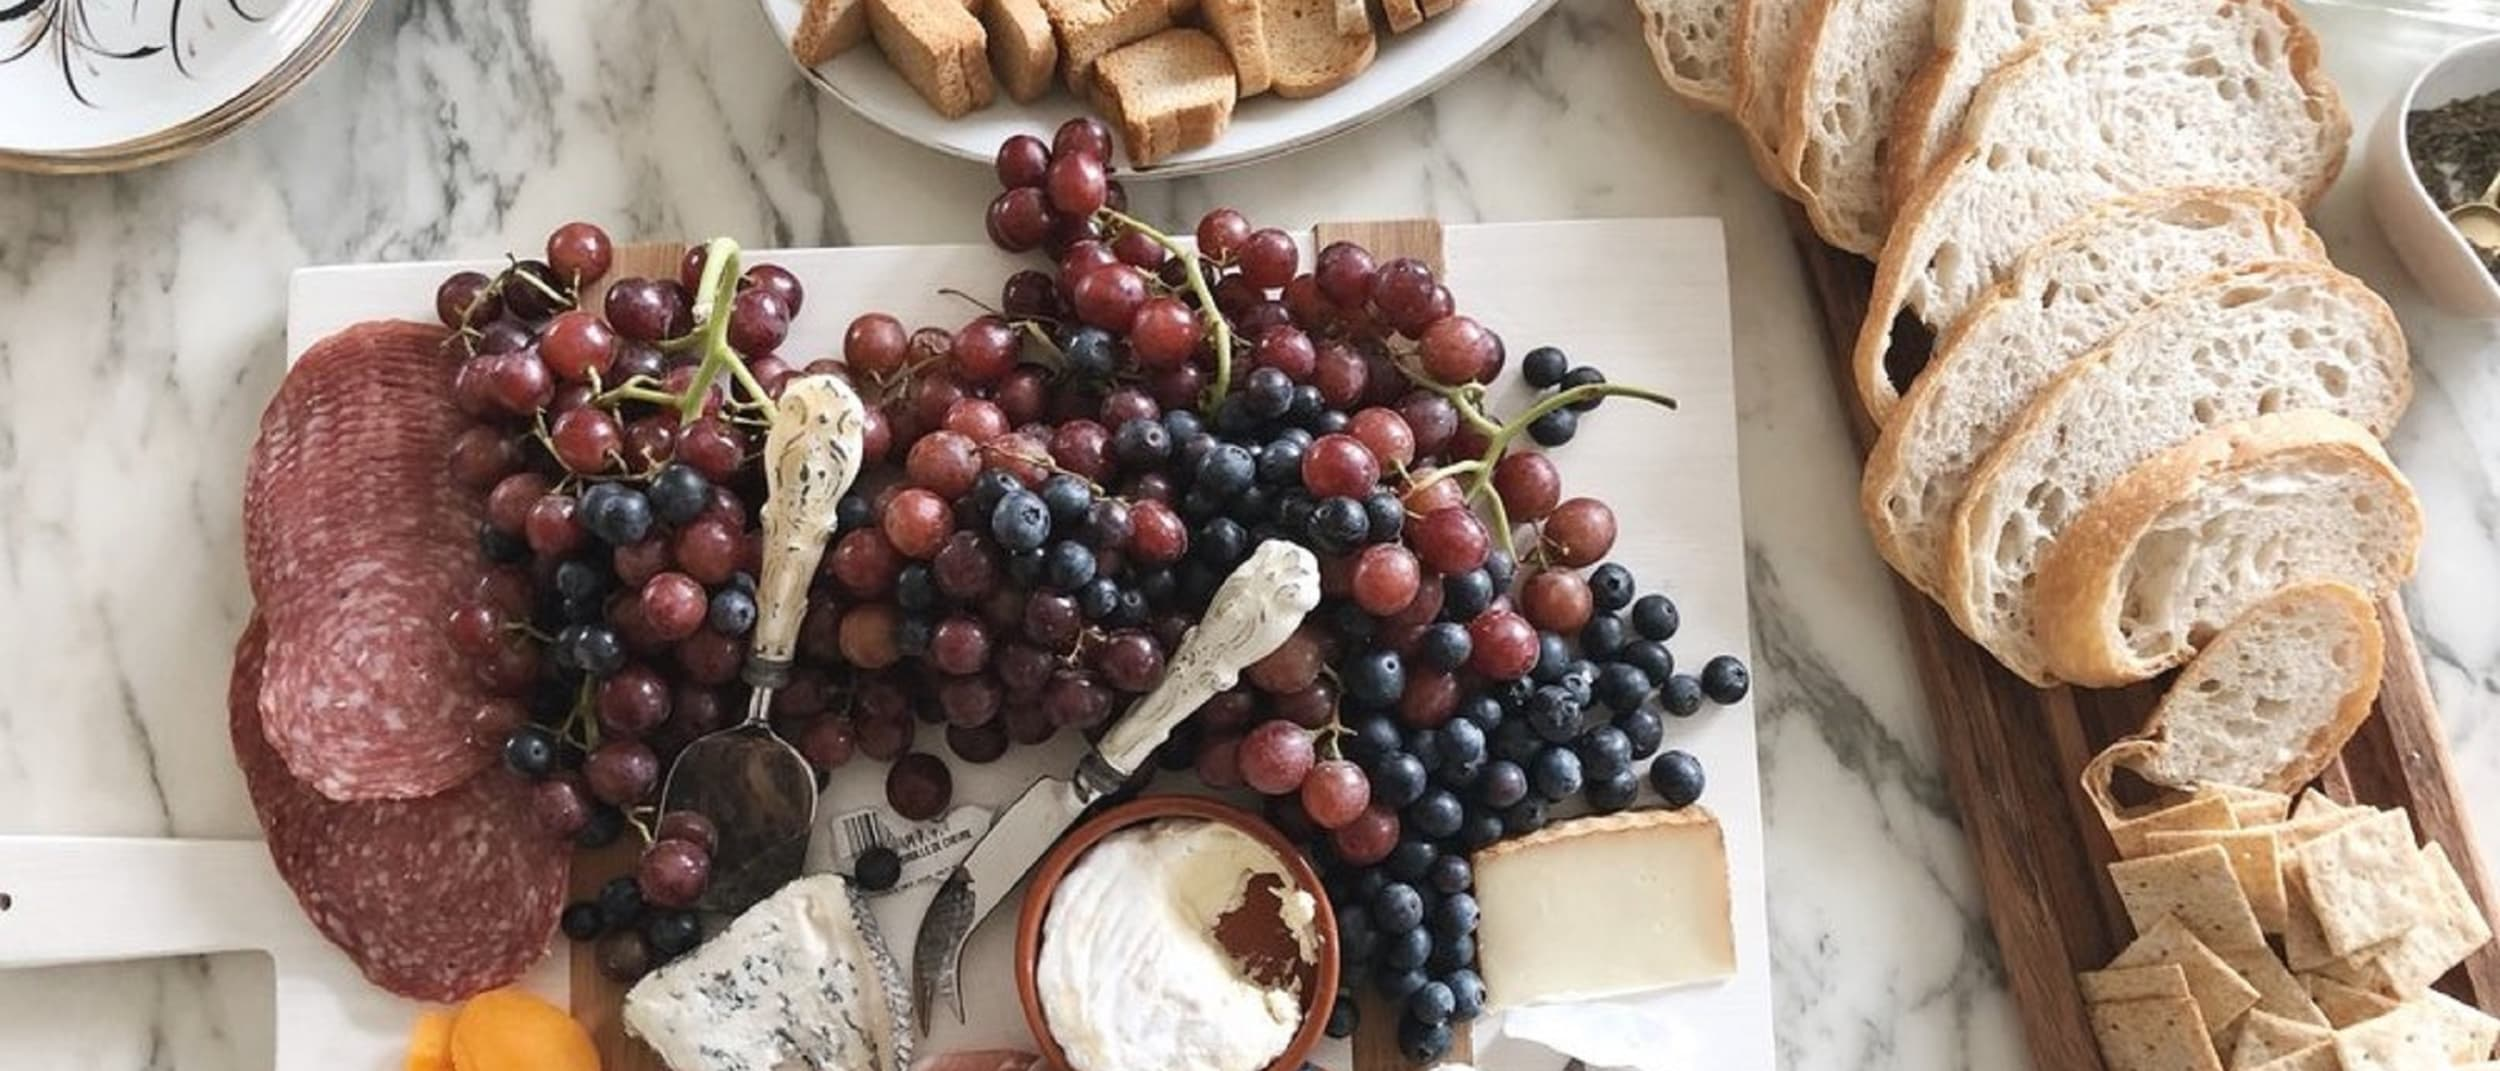 French inspired cheese board for entertaining